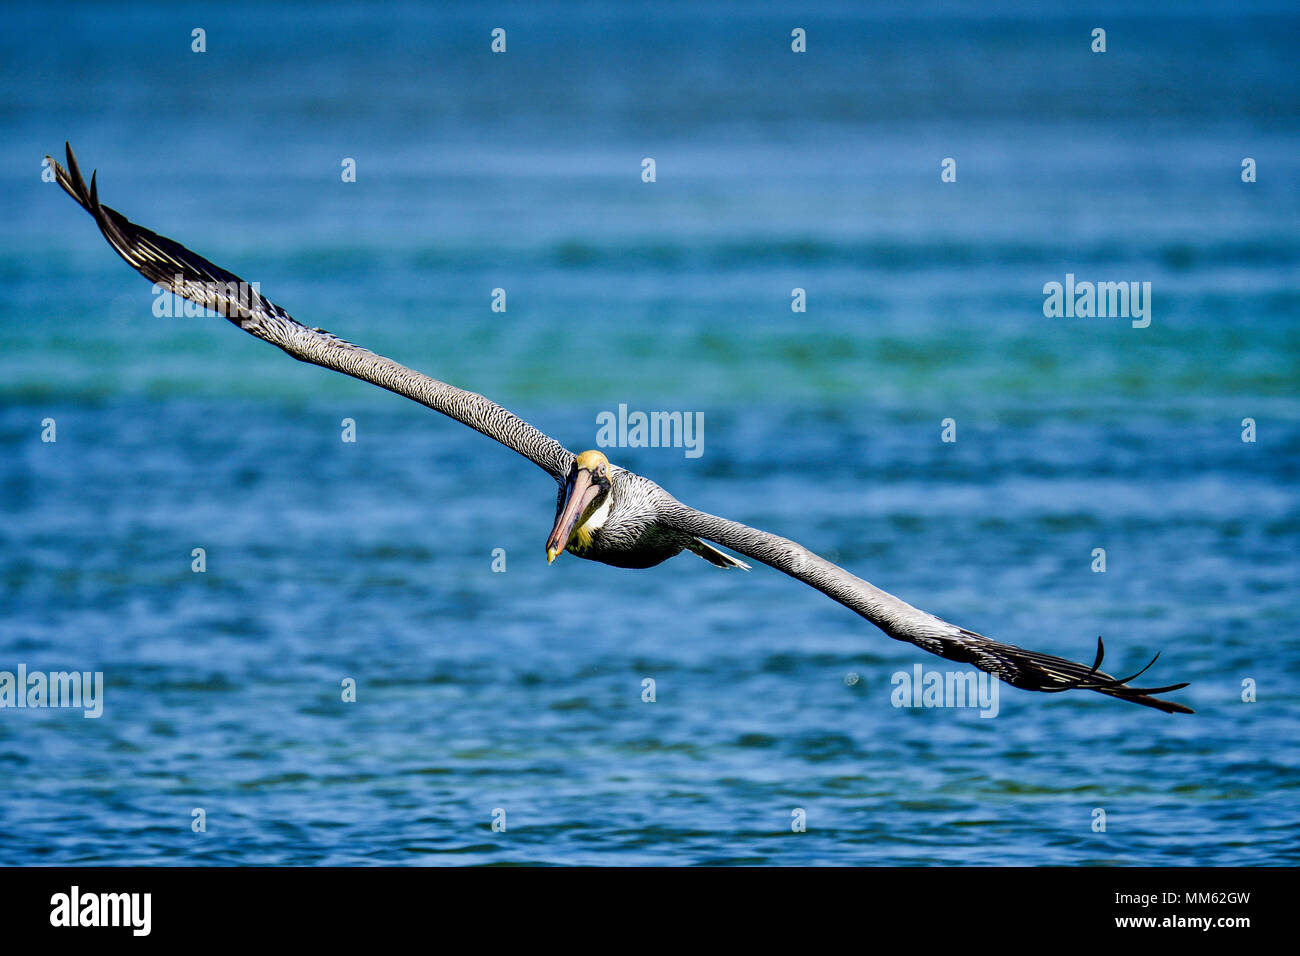 Brown pelican with fully extended wings. - Stock Image